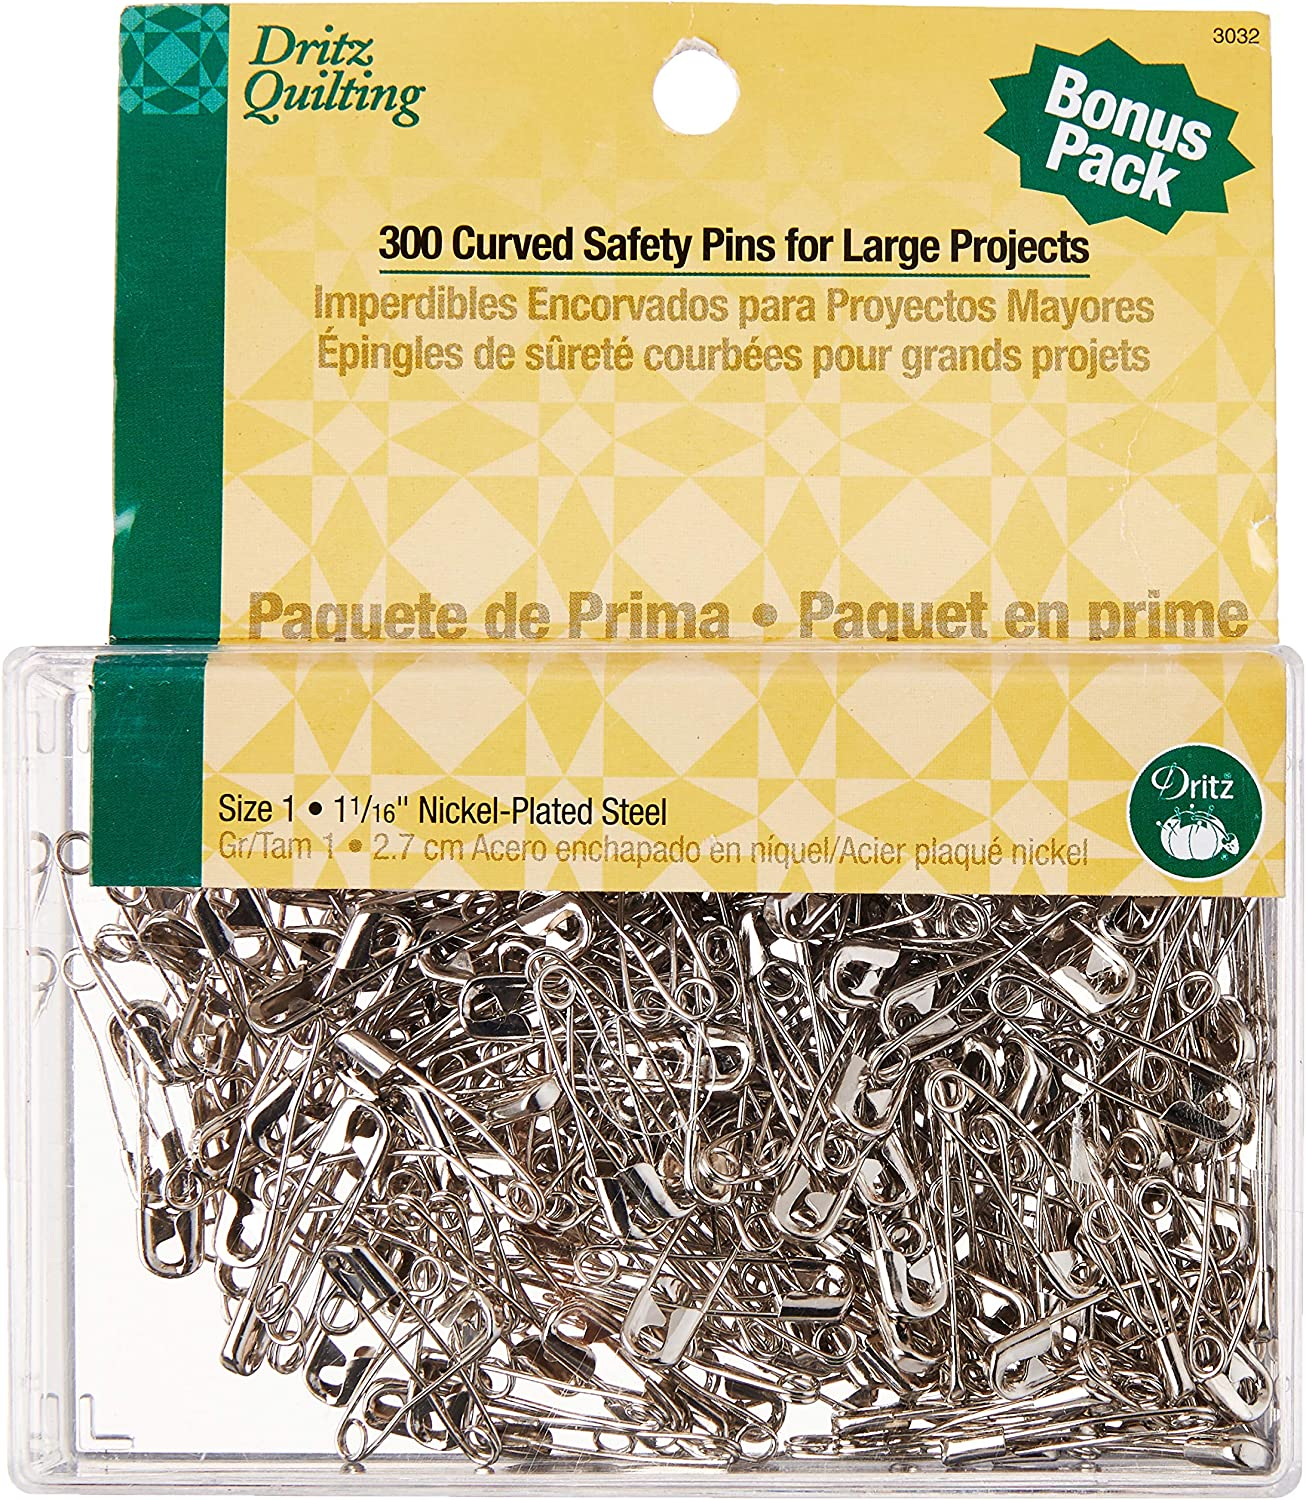 iNee Curved Safety Pins for Quilting 300 Count Size 1 Nickel-Plated Steel